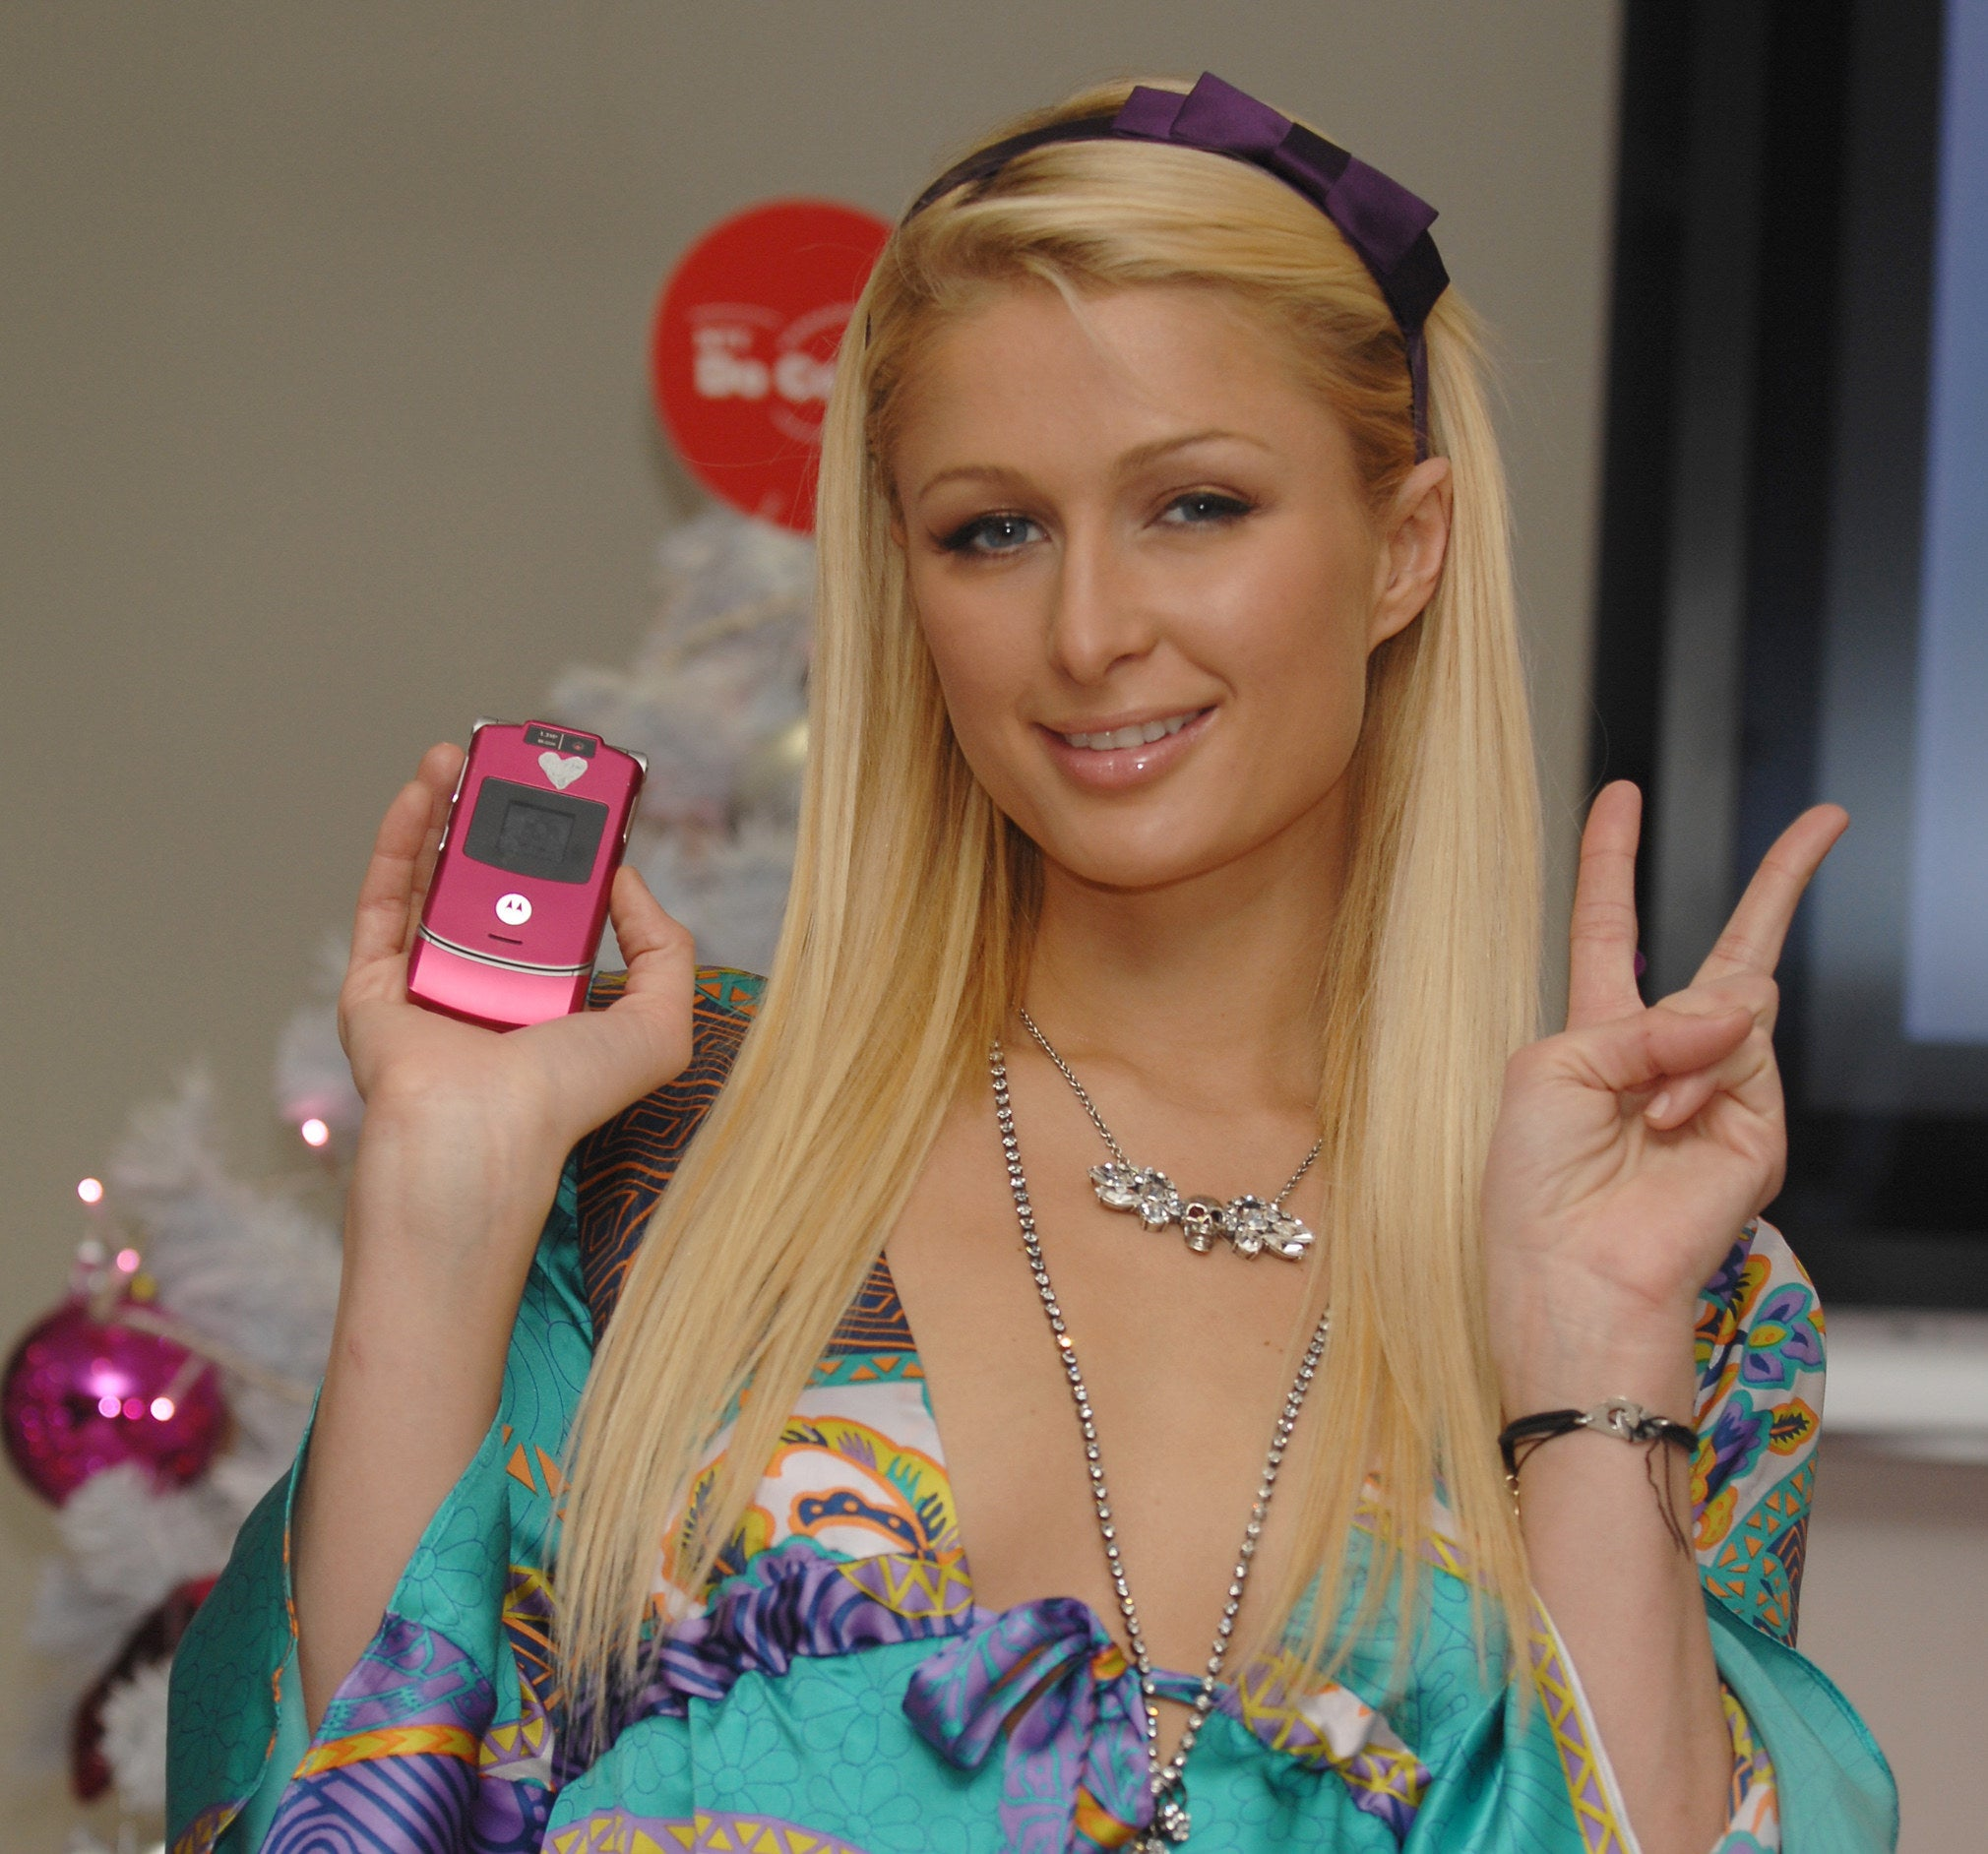 Paris Hilton holds up a pink Motorola Razr as she gives a peace sign